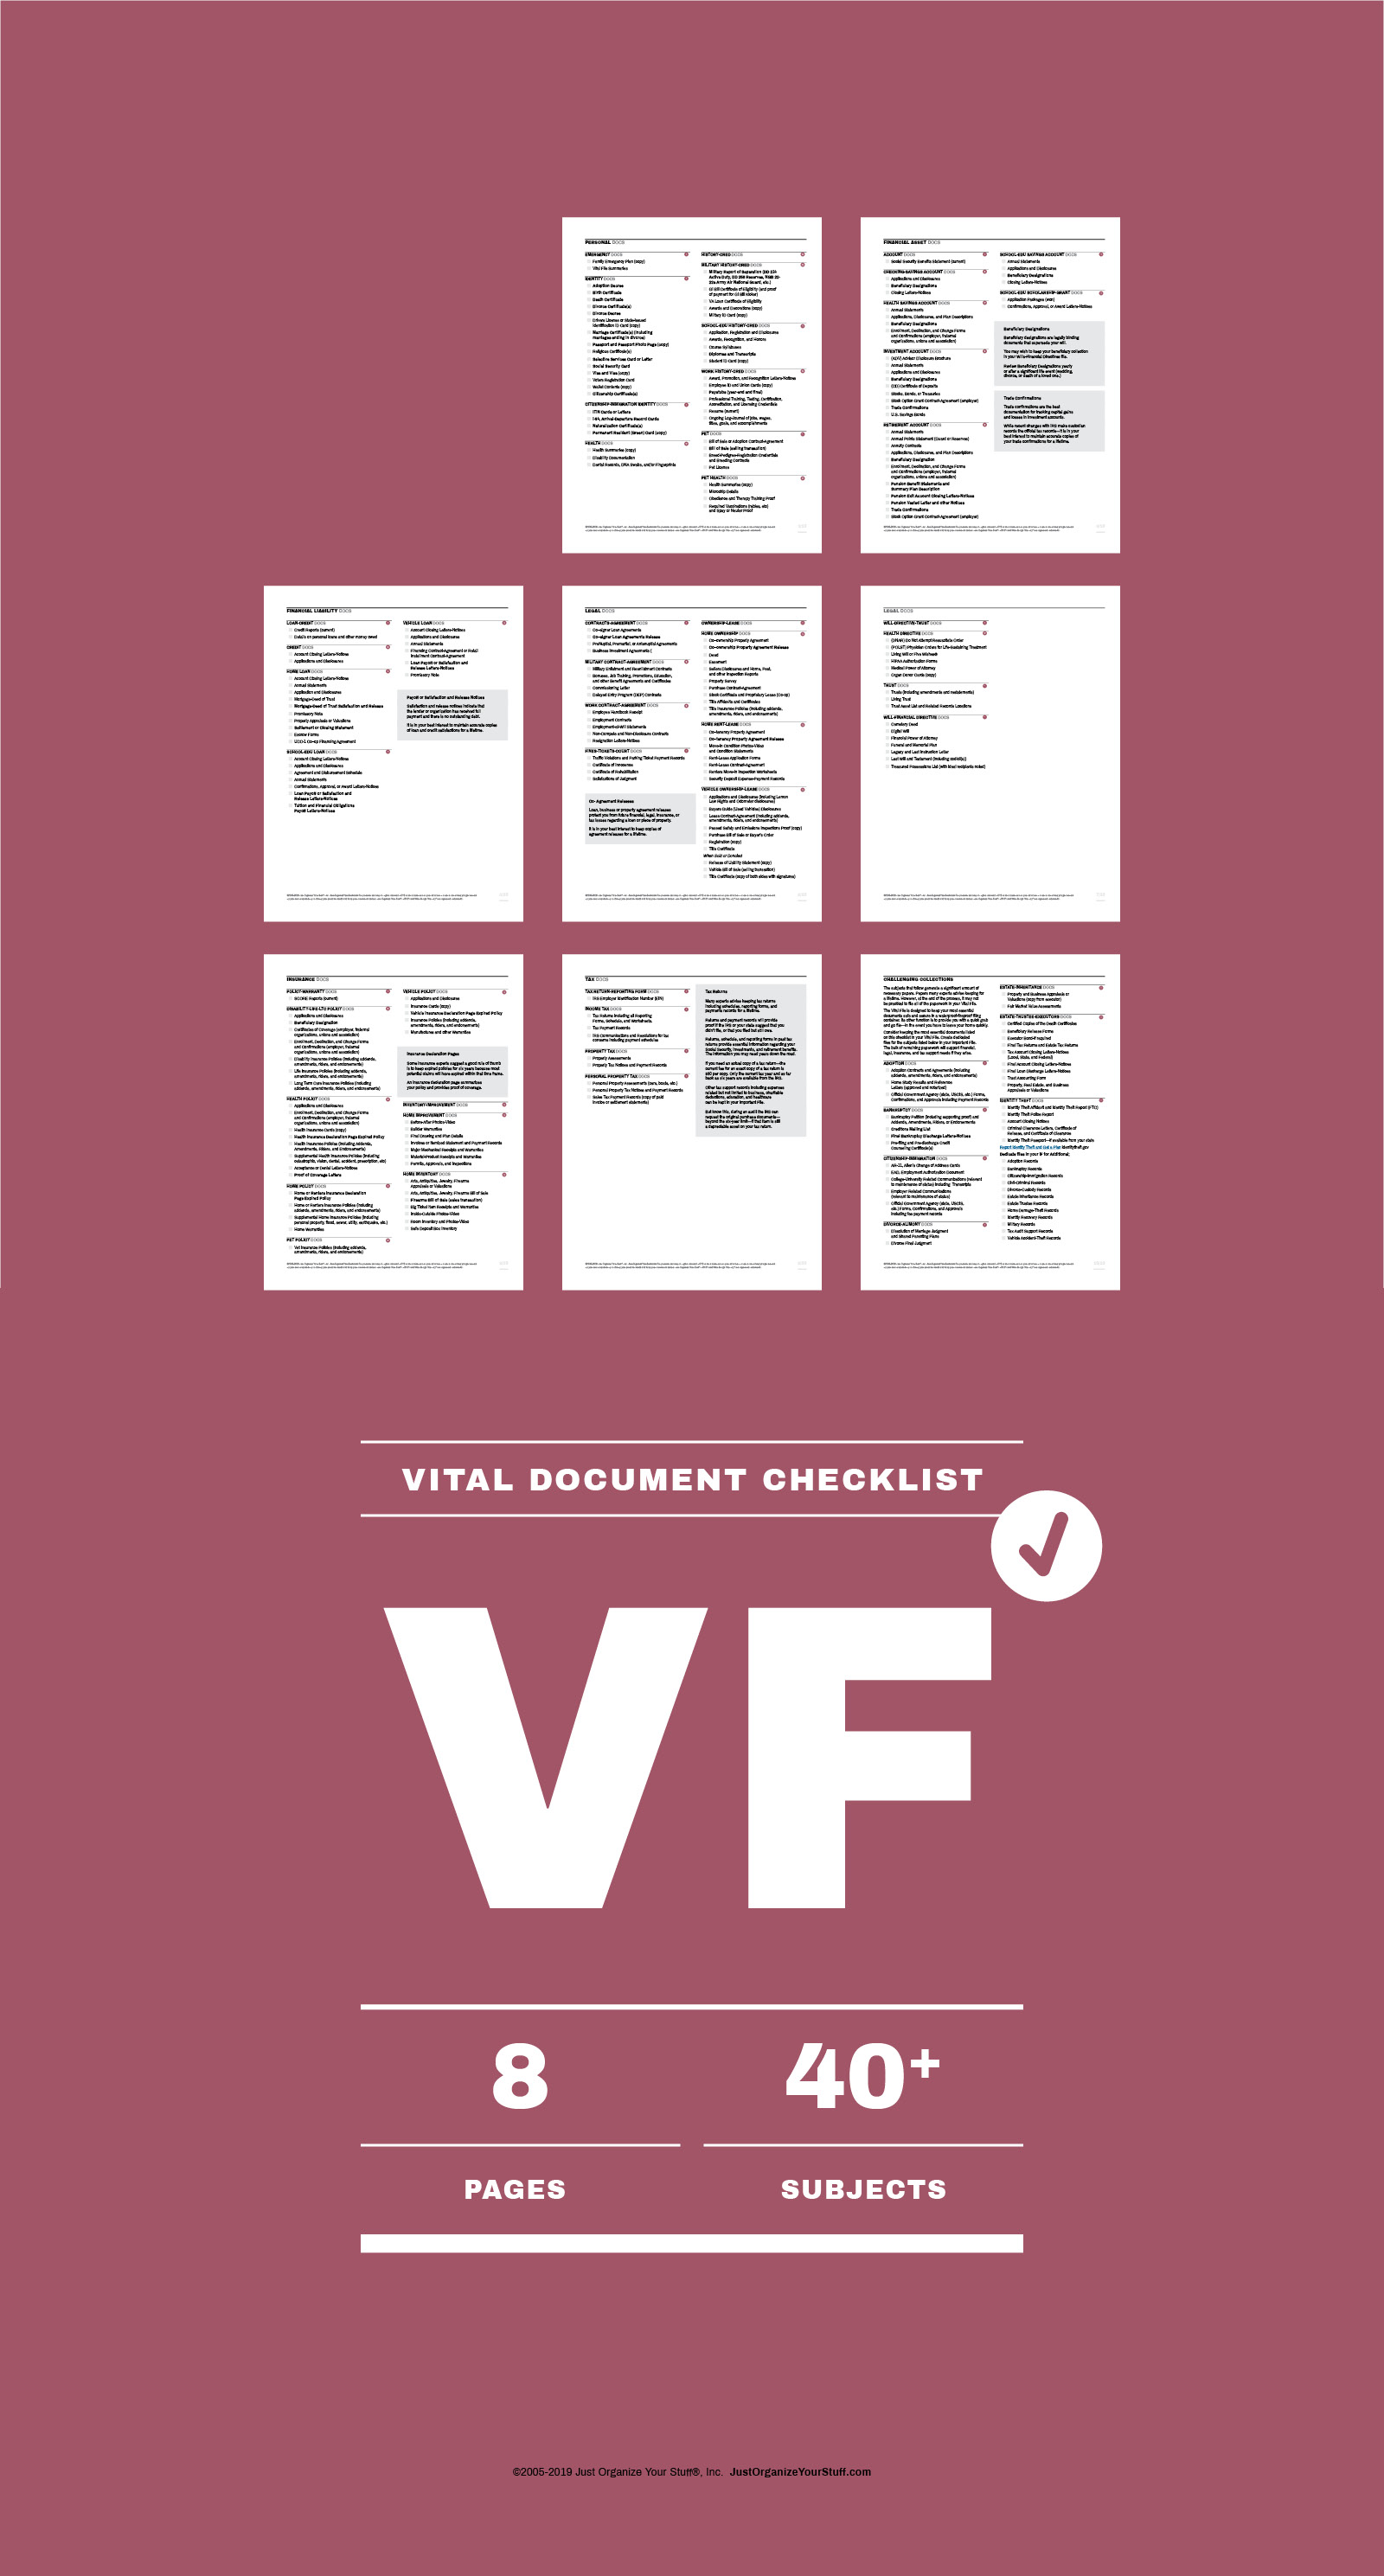 8 Individual thumbnails  of  vital document checklist